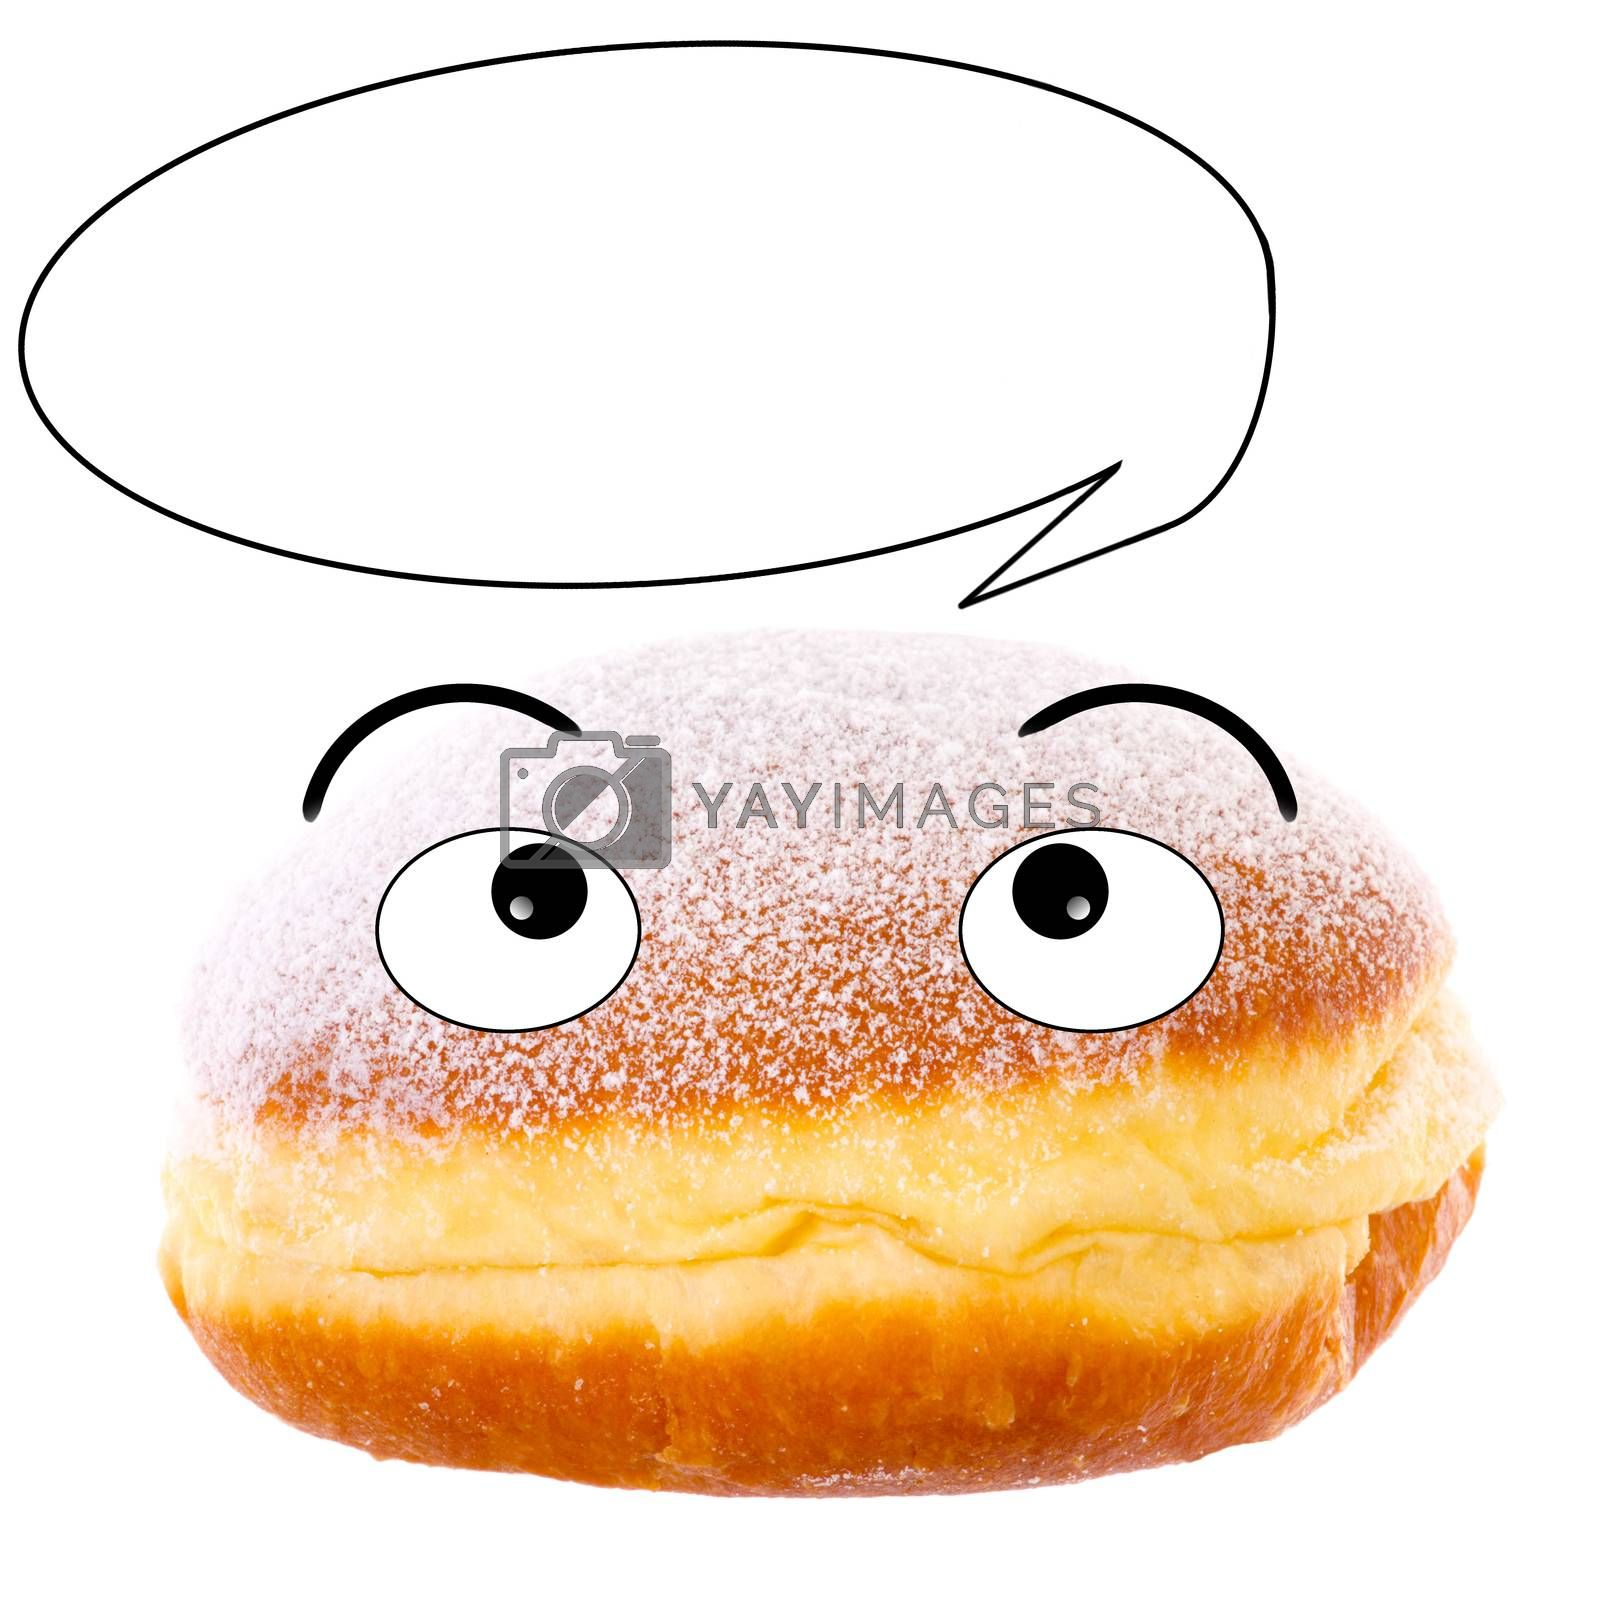 Cute Krapfen with speech bubble